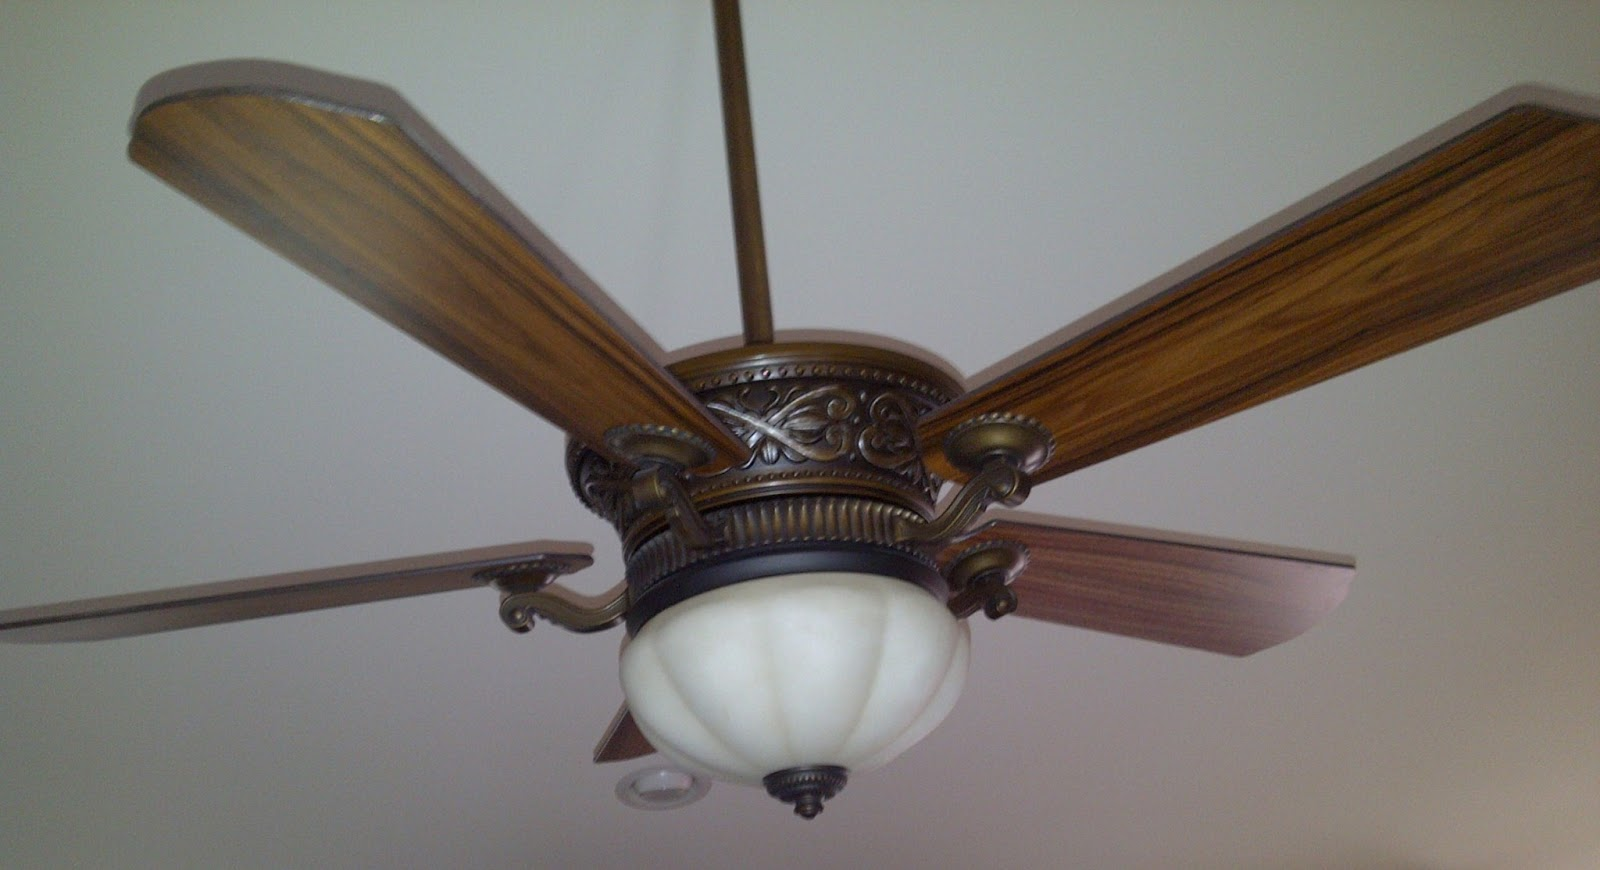 Ceiling Fan Upgrade: Install a Ceiling Fan With Uplight ...